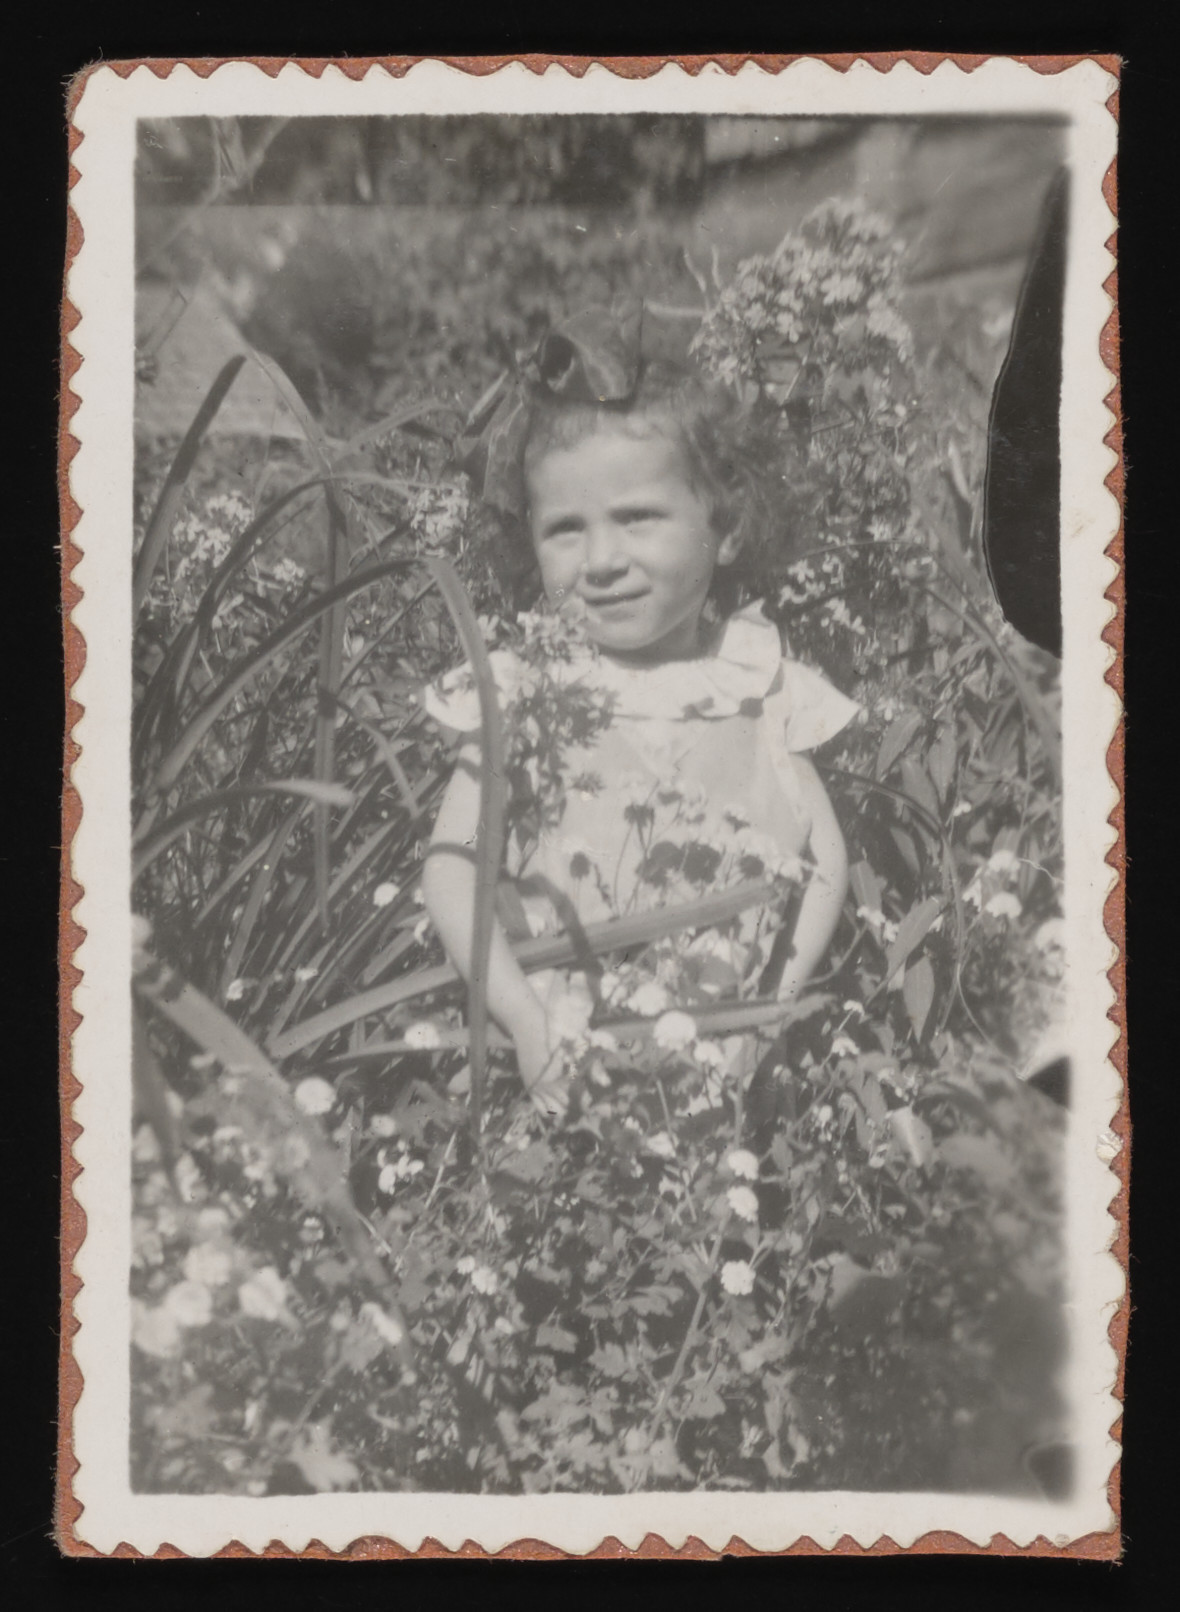 Close-up portrait of a young child, Marysia Rozenszajn, standing among high grass while in hiding.